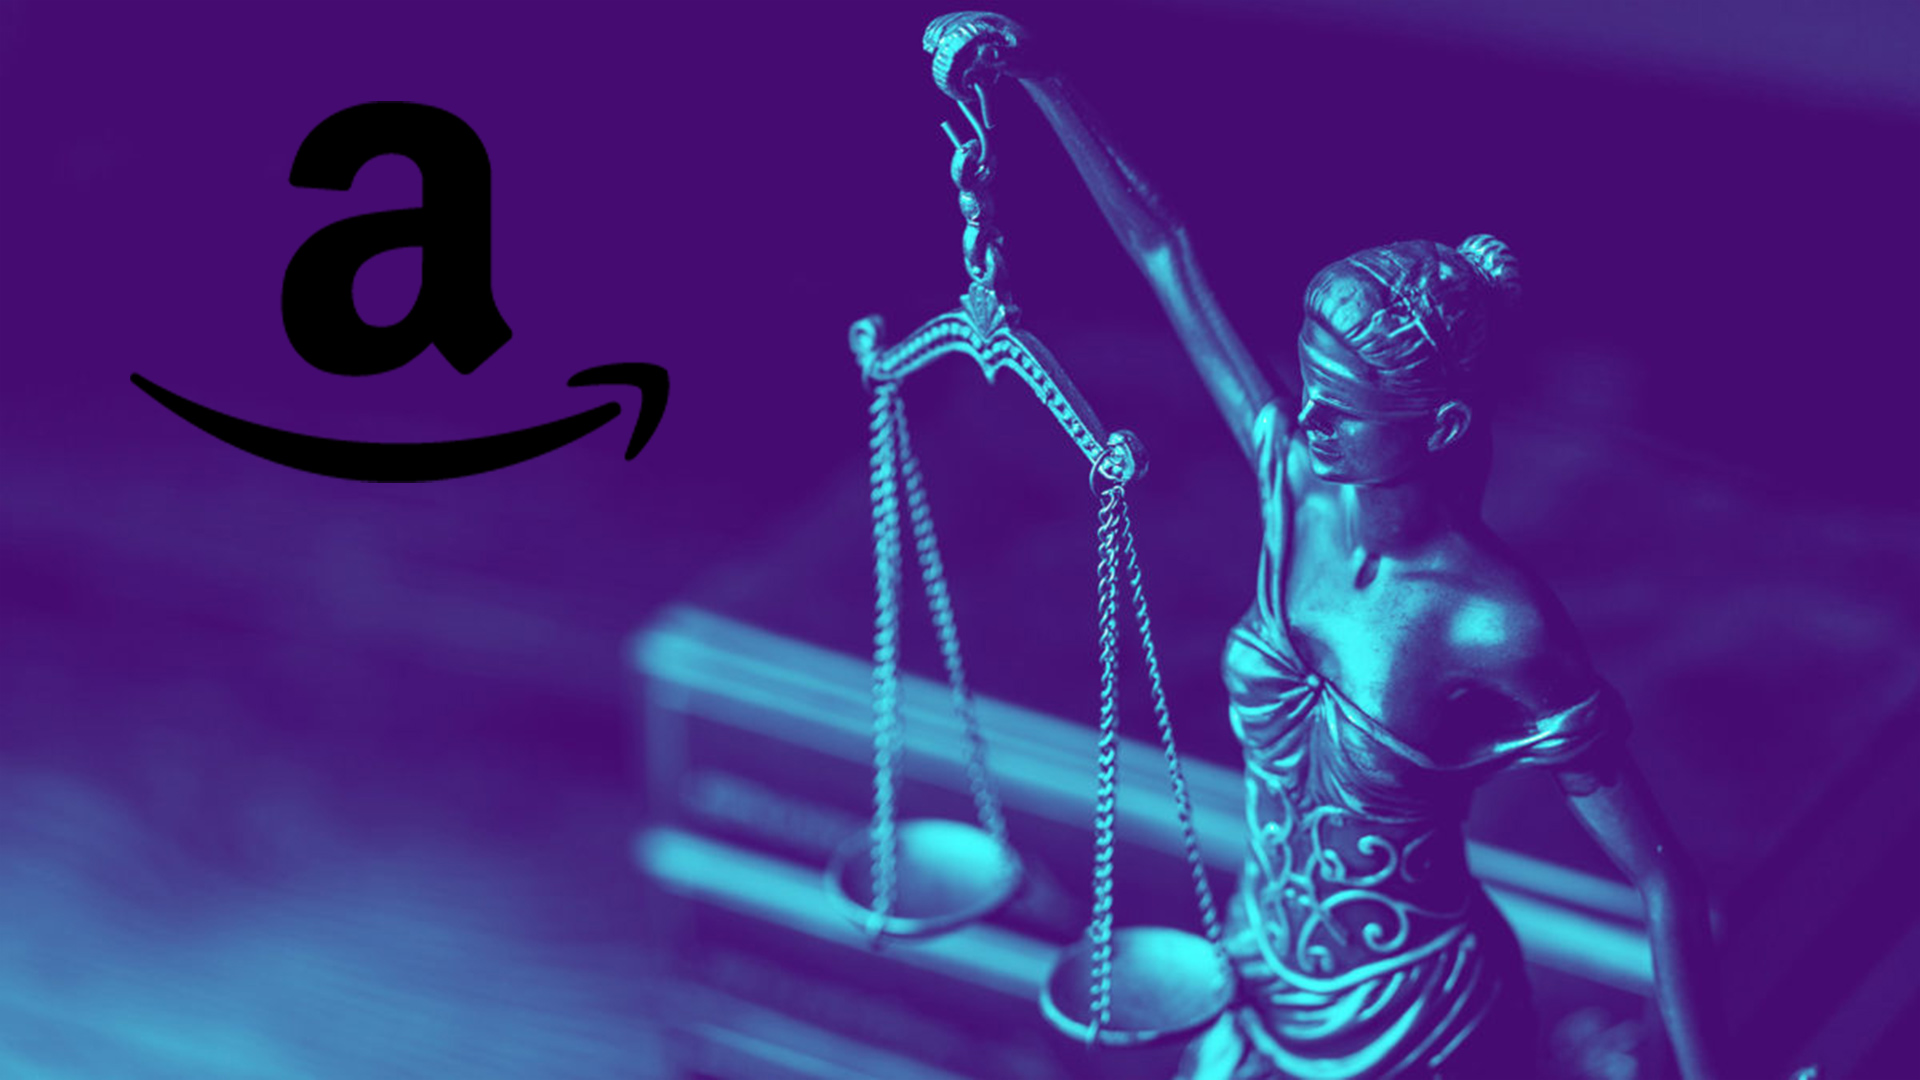 The seventh paragraph of the new Terms of Service highlights your responsibility as an Amazon seller to ensure that your products are not infringing upon any intellectual property rights of another person.